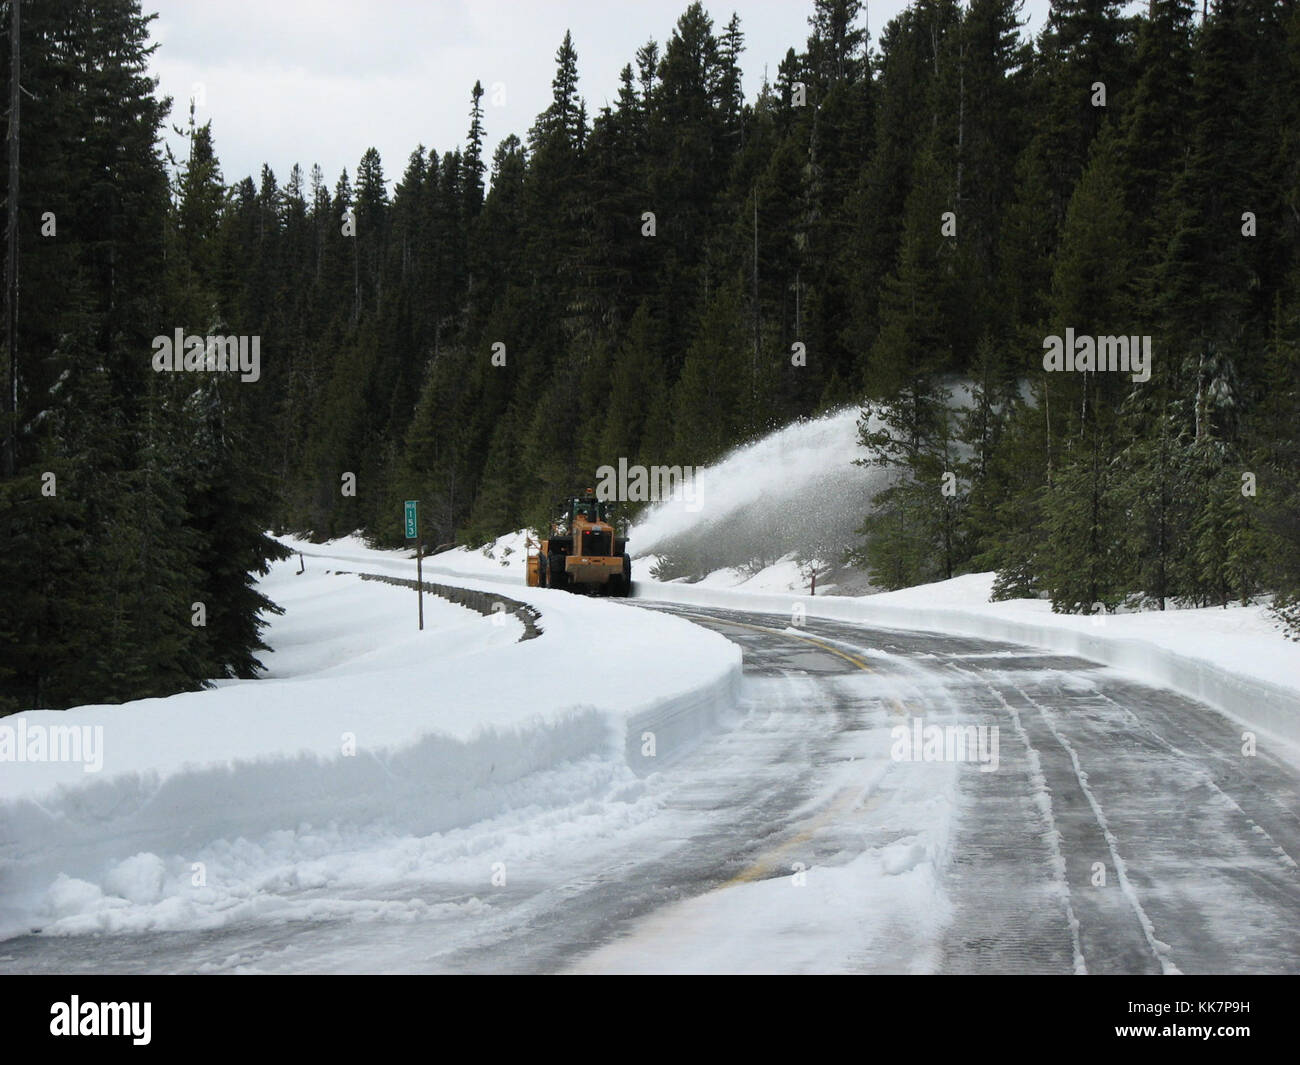 Each season, when clearing SR 20/North Cascades Highway, between